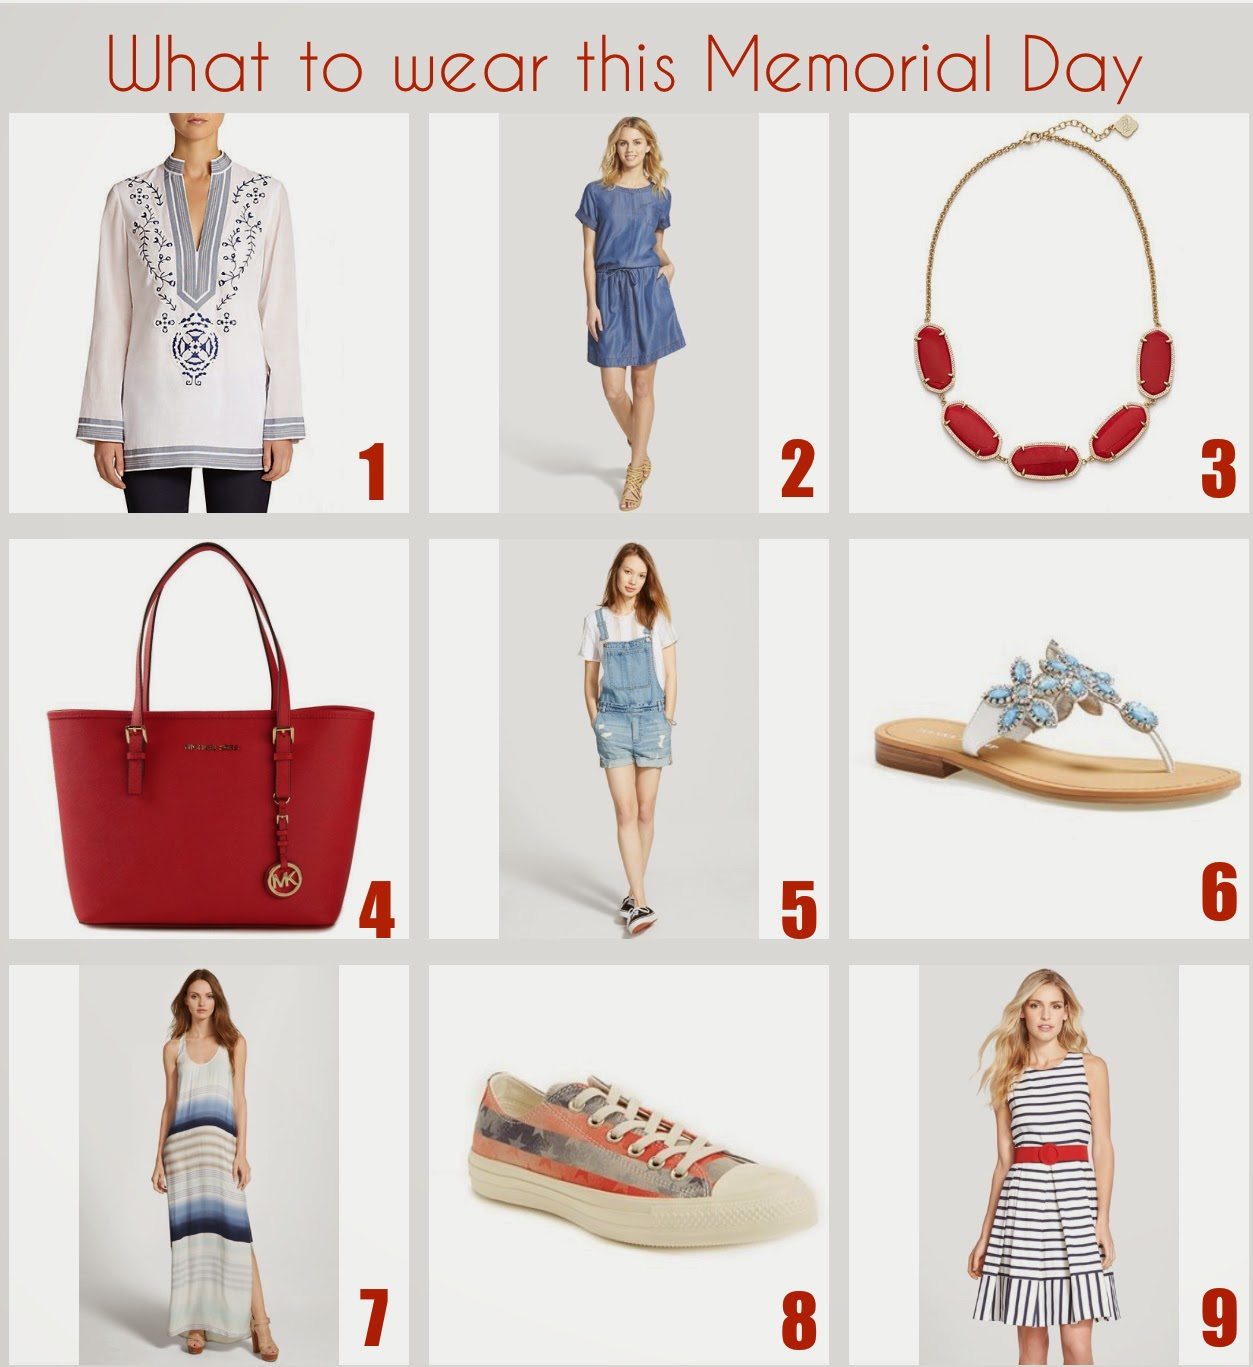 What to Wear during Memorial Day Weekend